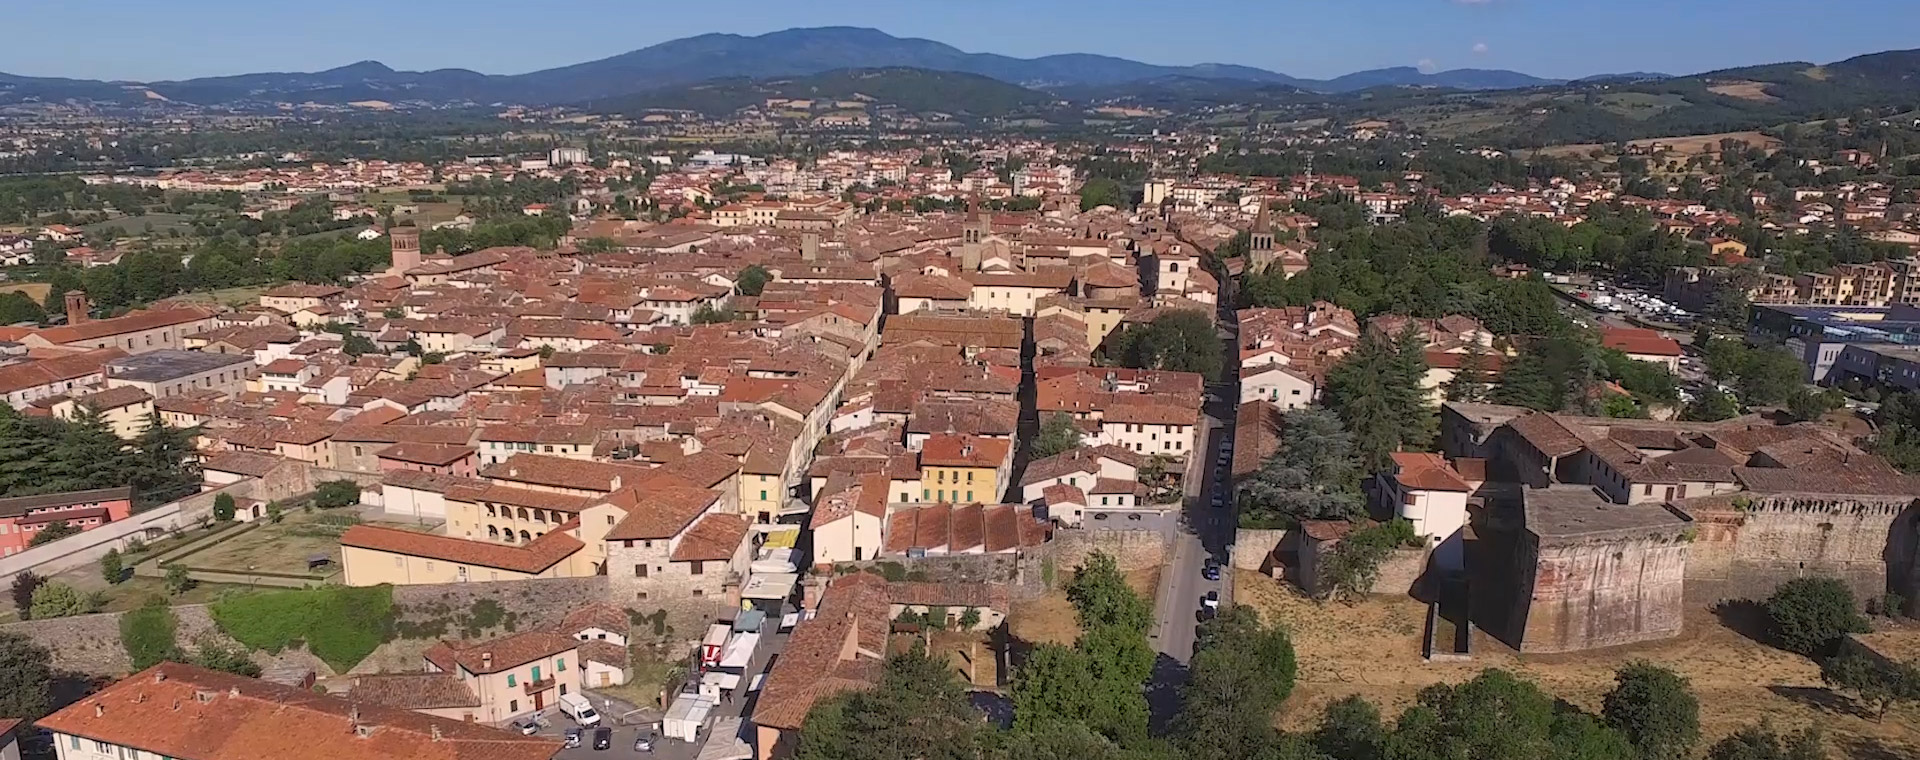 The villa is located in the city centre of Sansepolcro in Tuscany